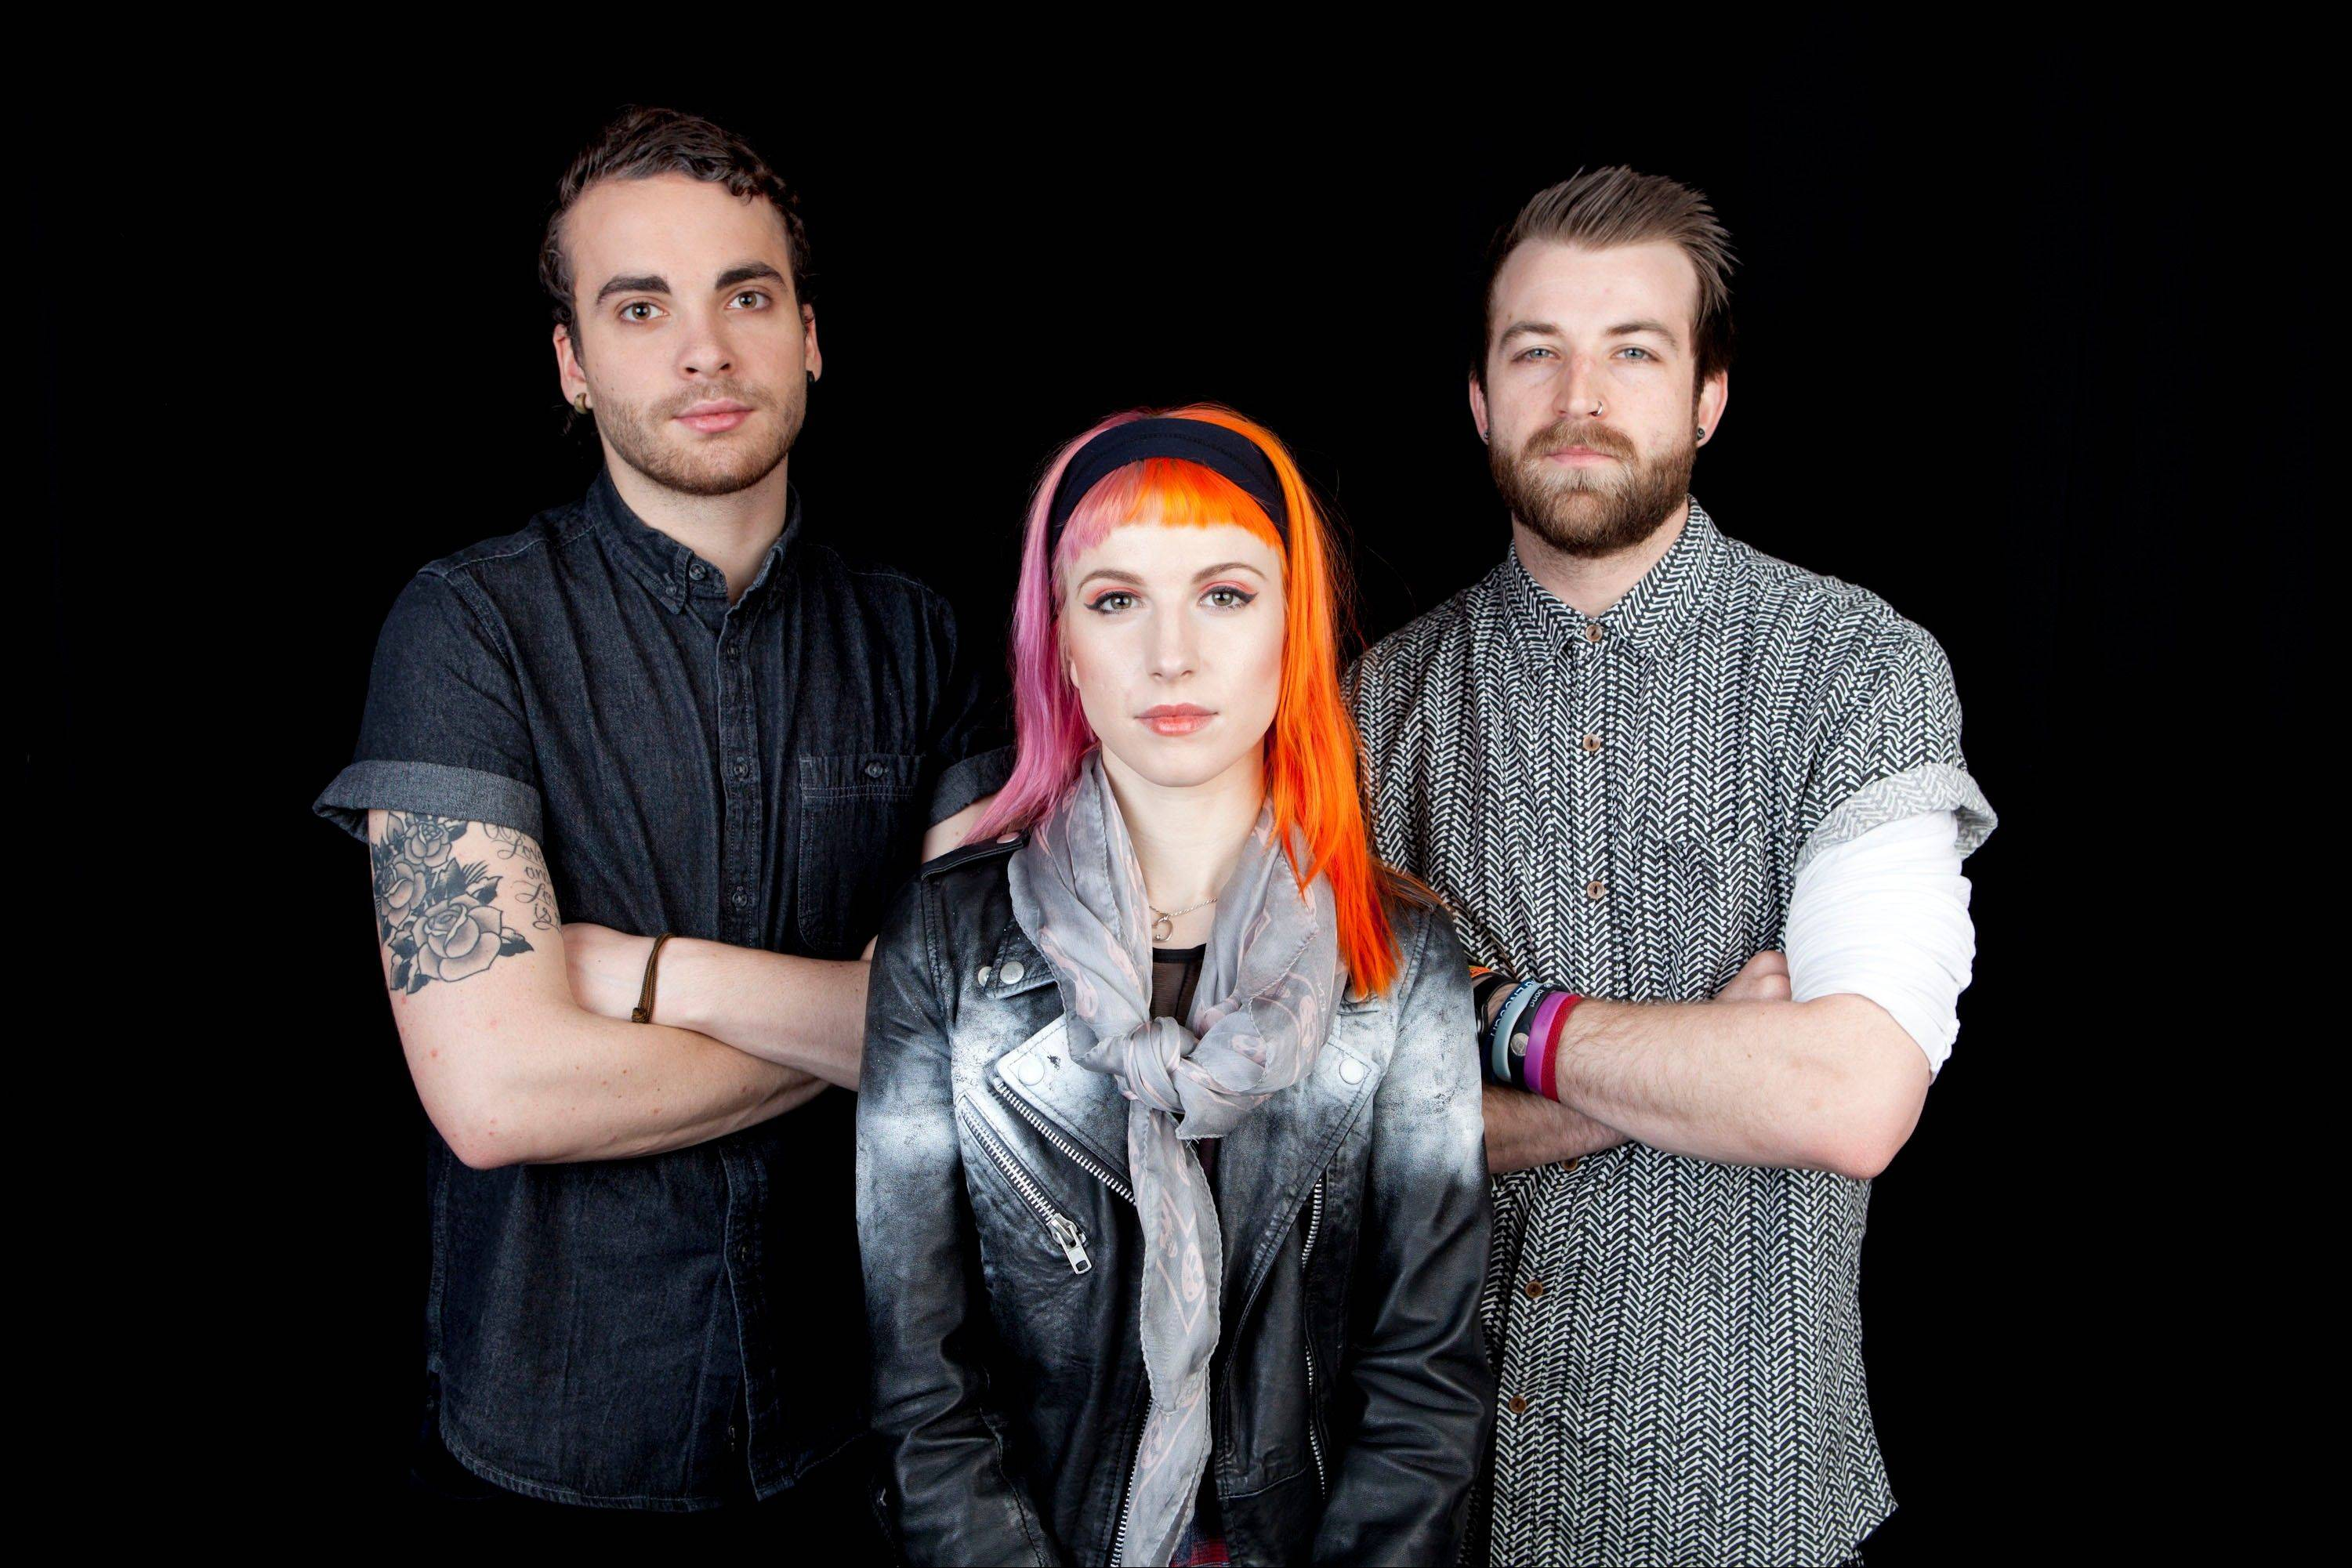 Paramore — featuring Taylor York, Hayley Williams and Jeremy Davis — is out with a fourth album. They play a sold-out show May 9 at the Chicago Theatre.